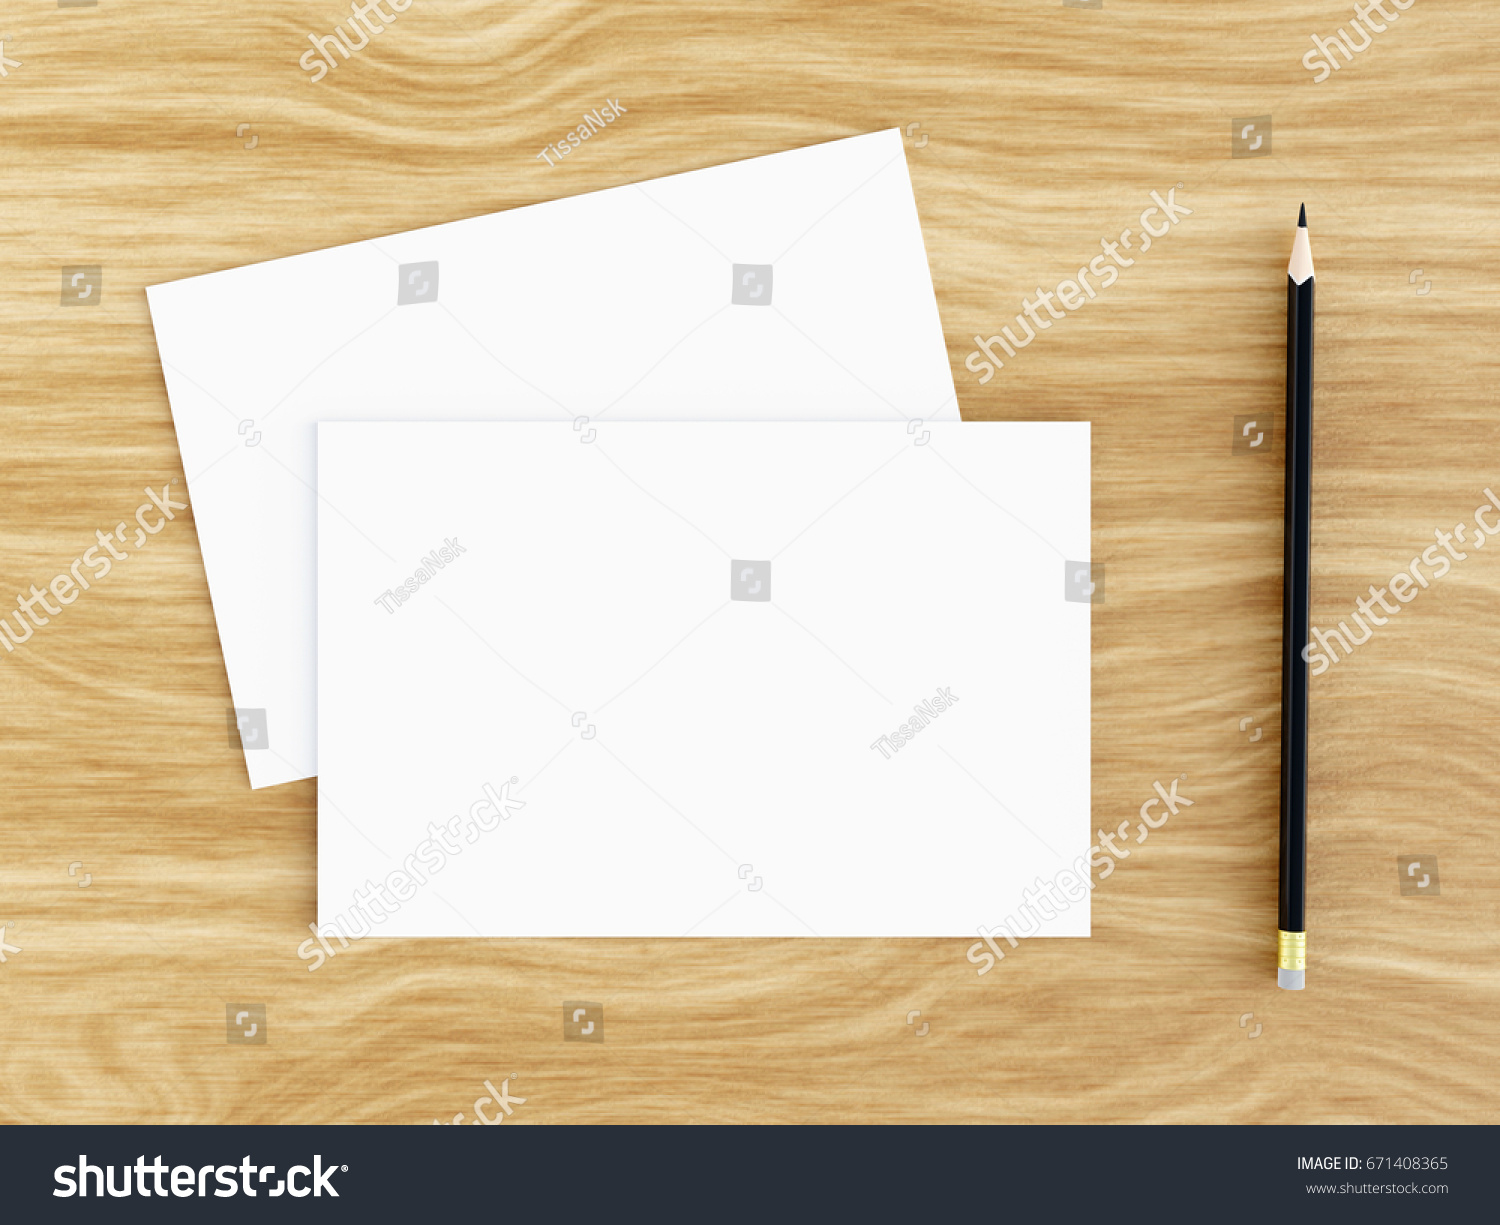 Blank White Greeting Card Mockup Pencil Stock Illustration 671408365